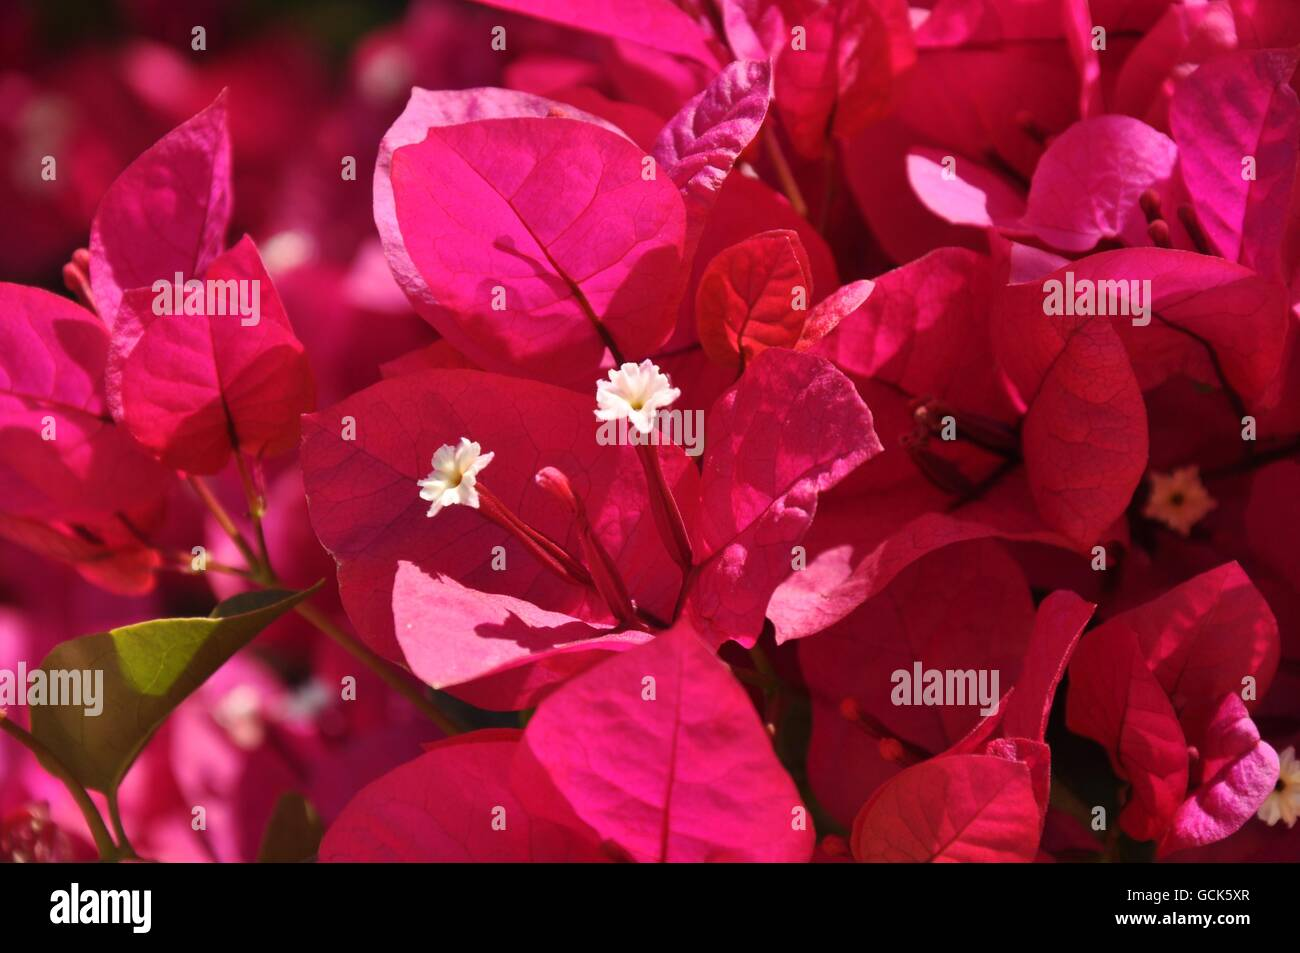 Bright pink floral background hot stock photos bright pink floral bright pink floral background with hot pink leaves and white stamens in garden setting in western mightylinksfo